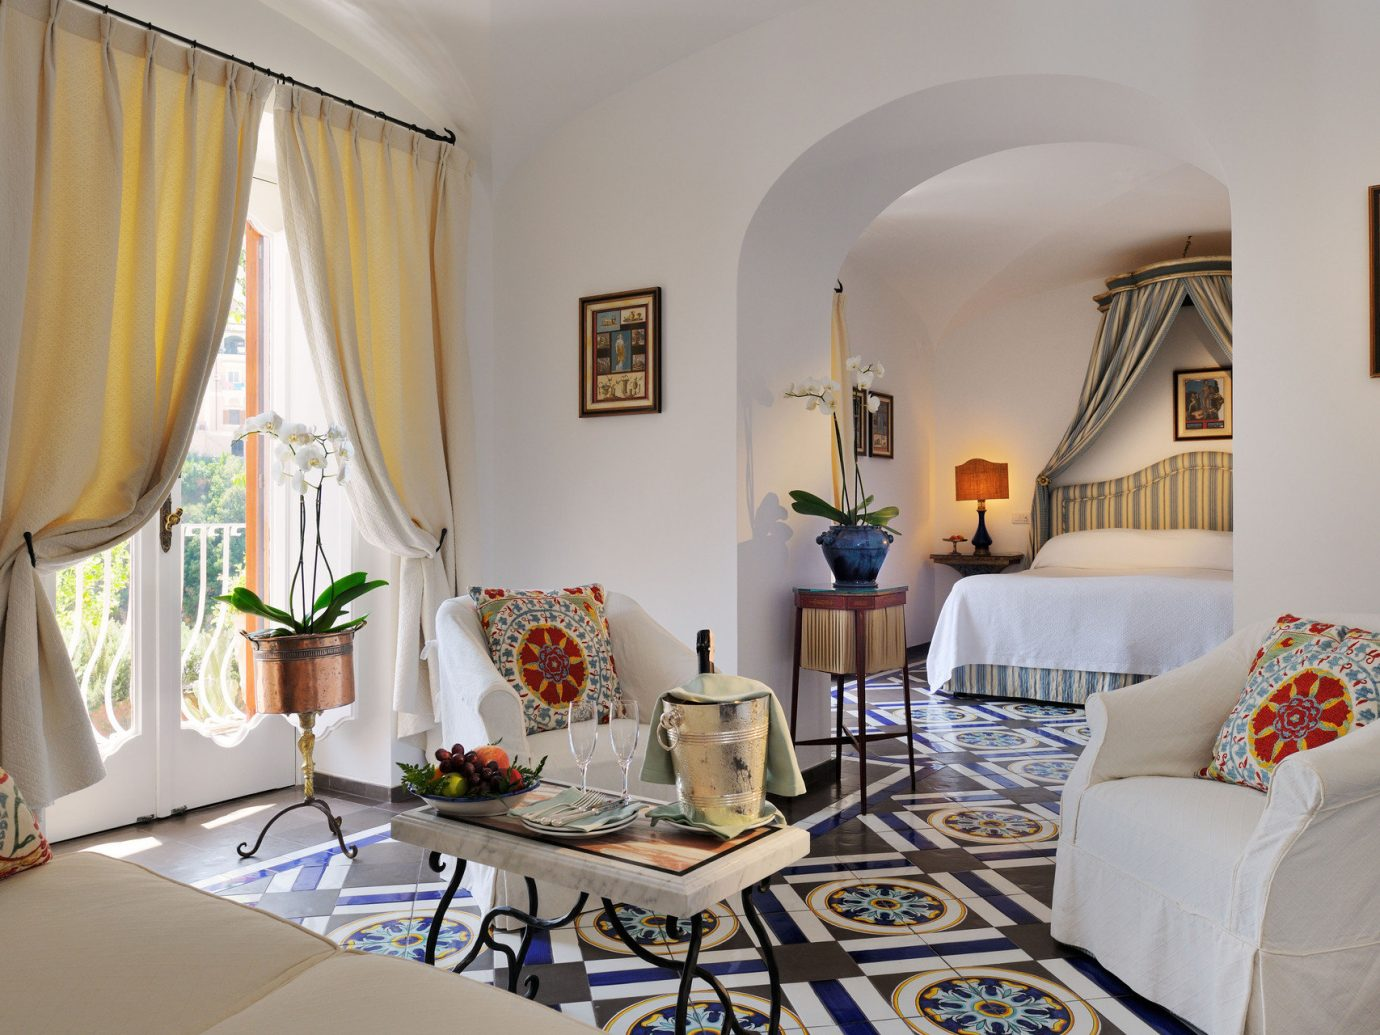 Bedroom at Le Sirenuse, Positano